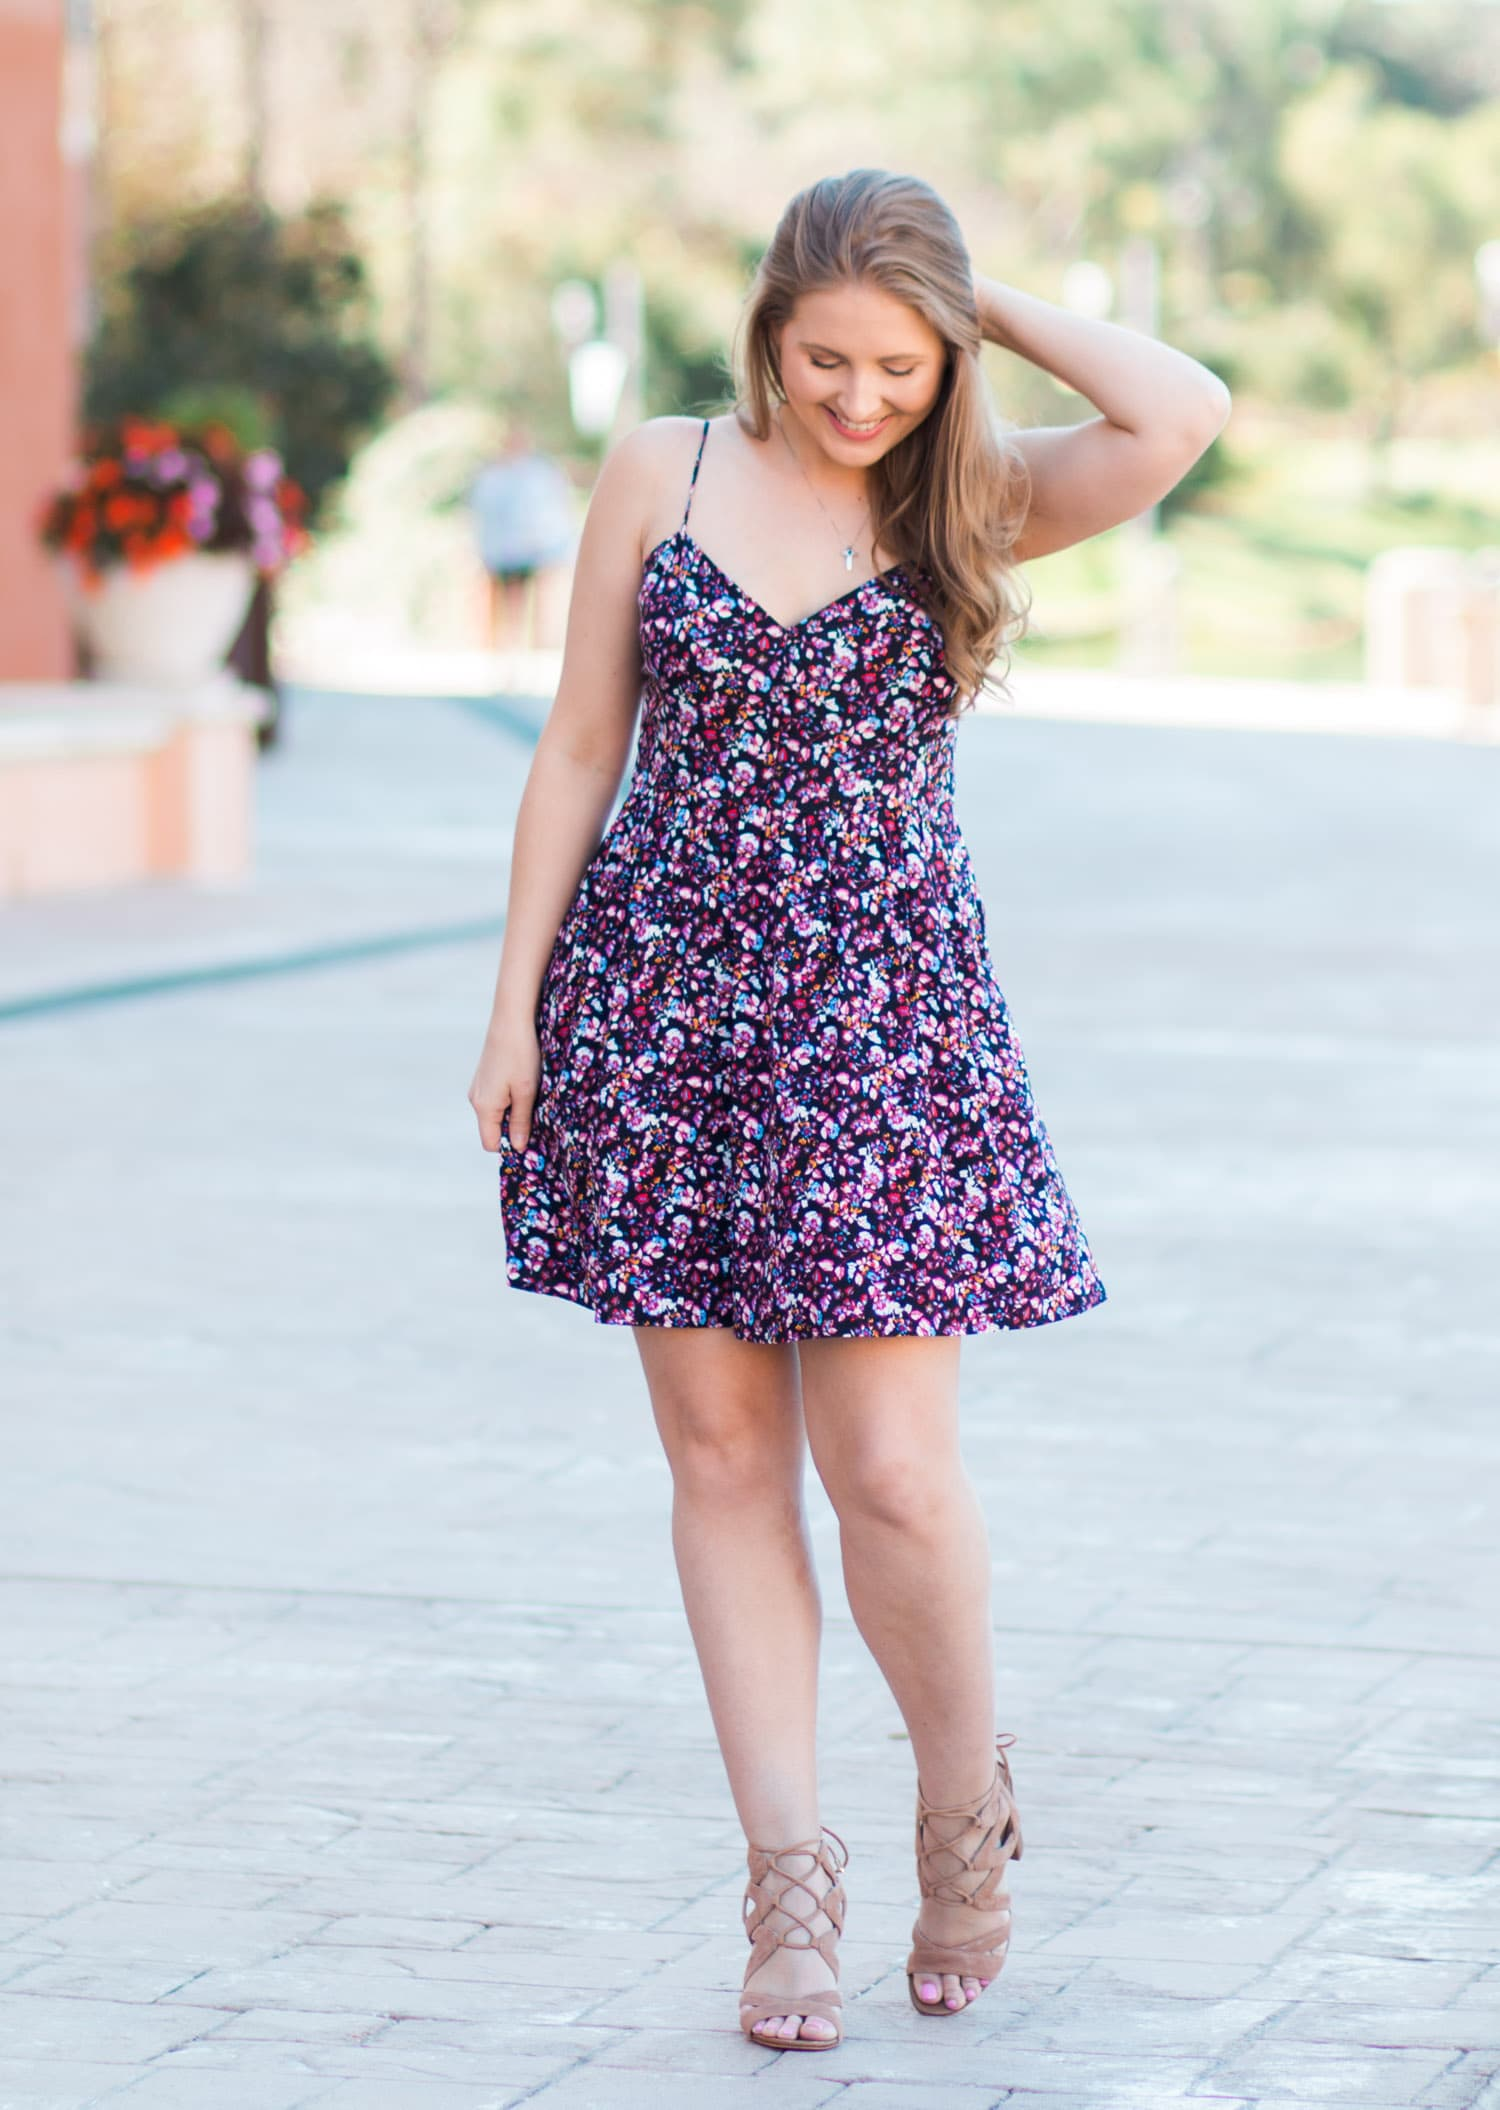 Spring fashion floral dress outfit